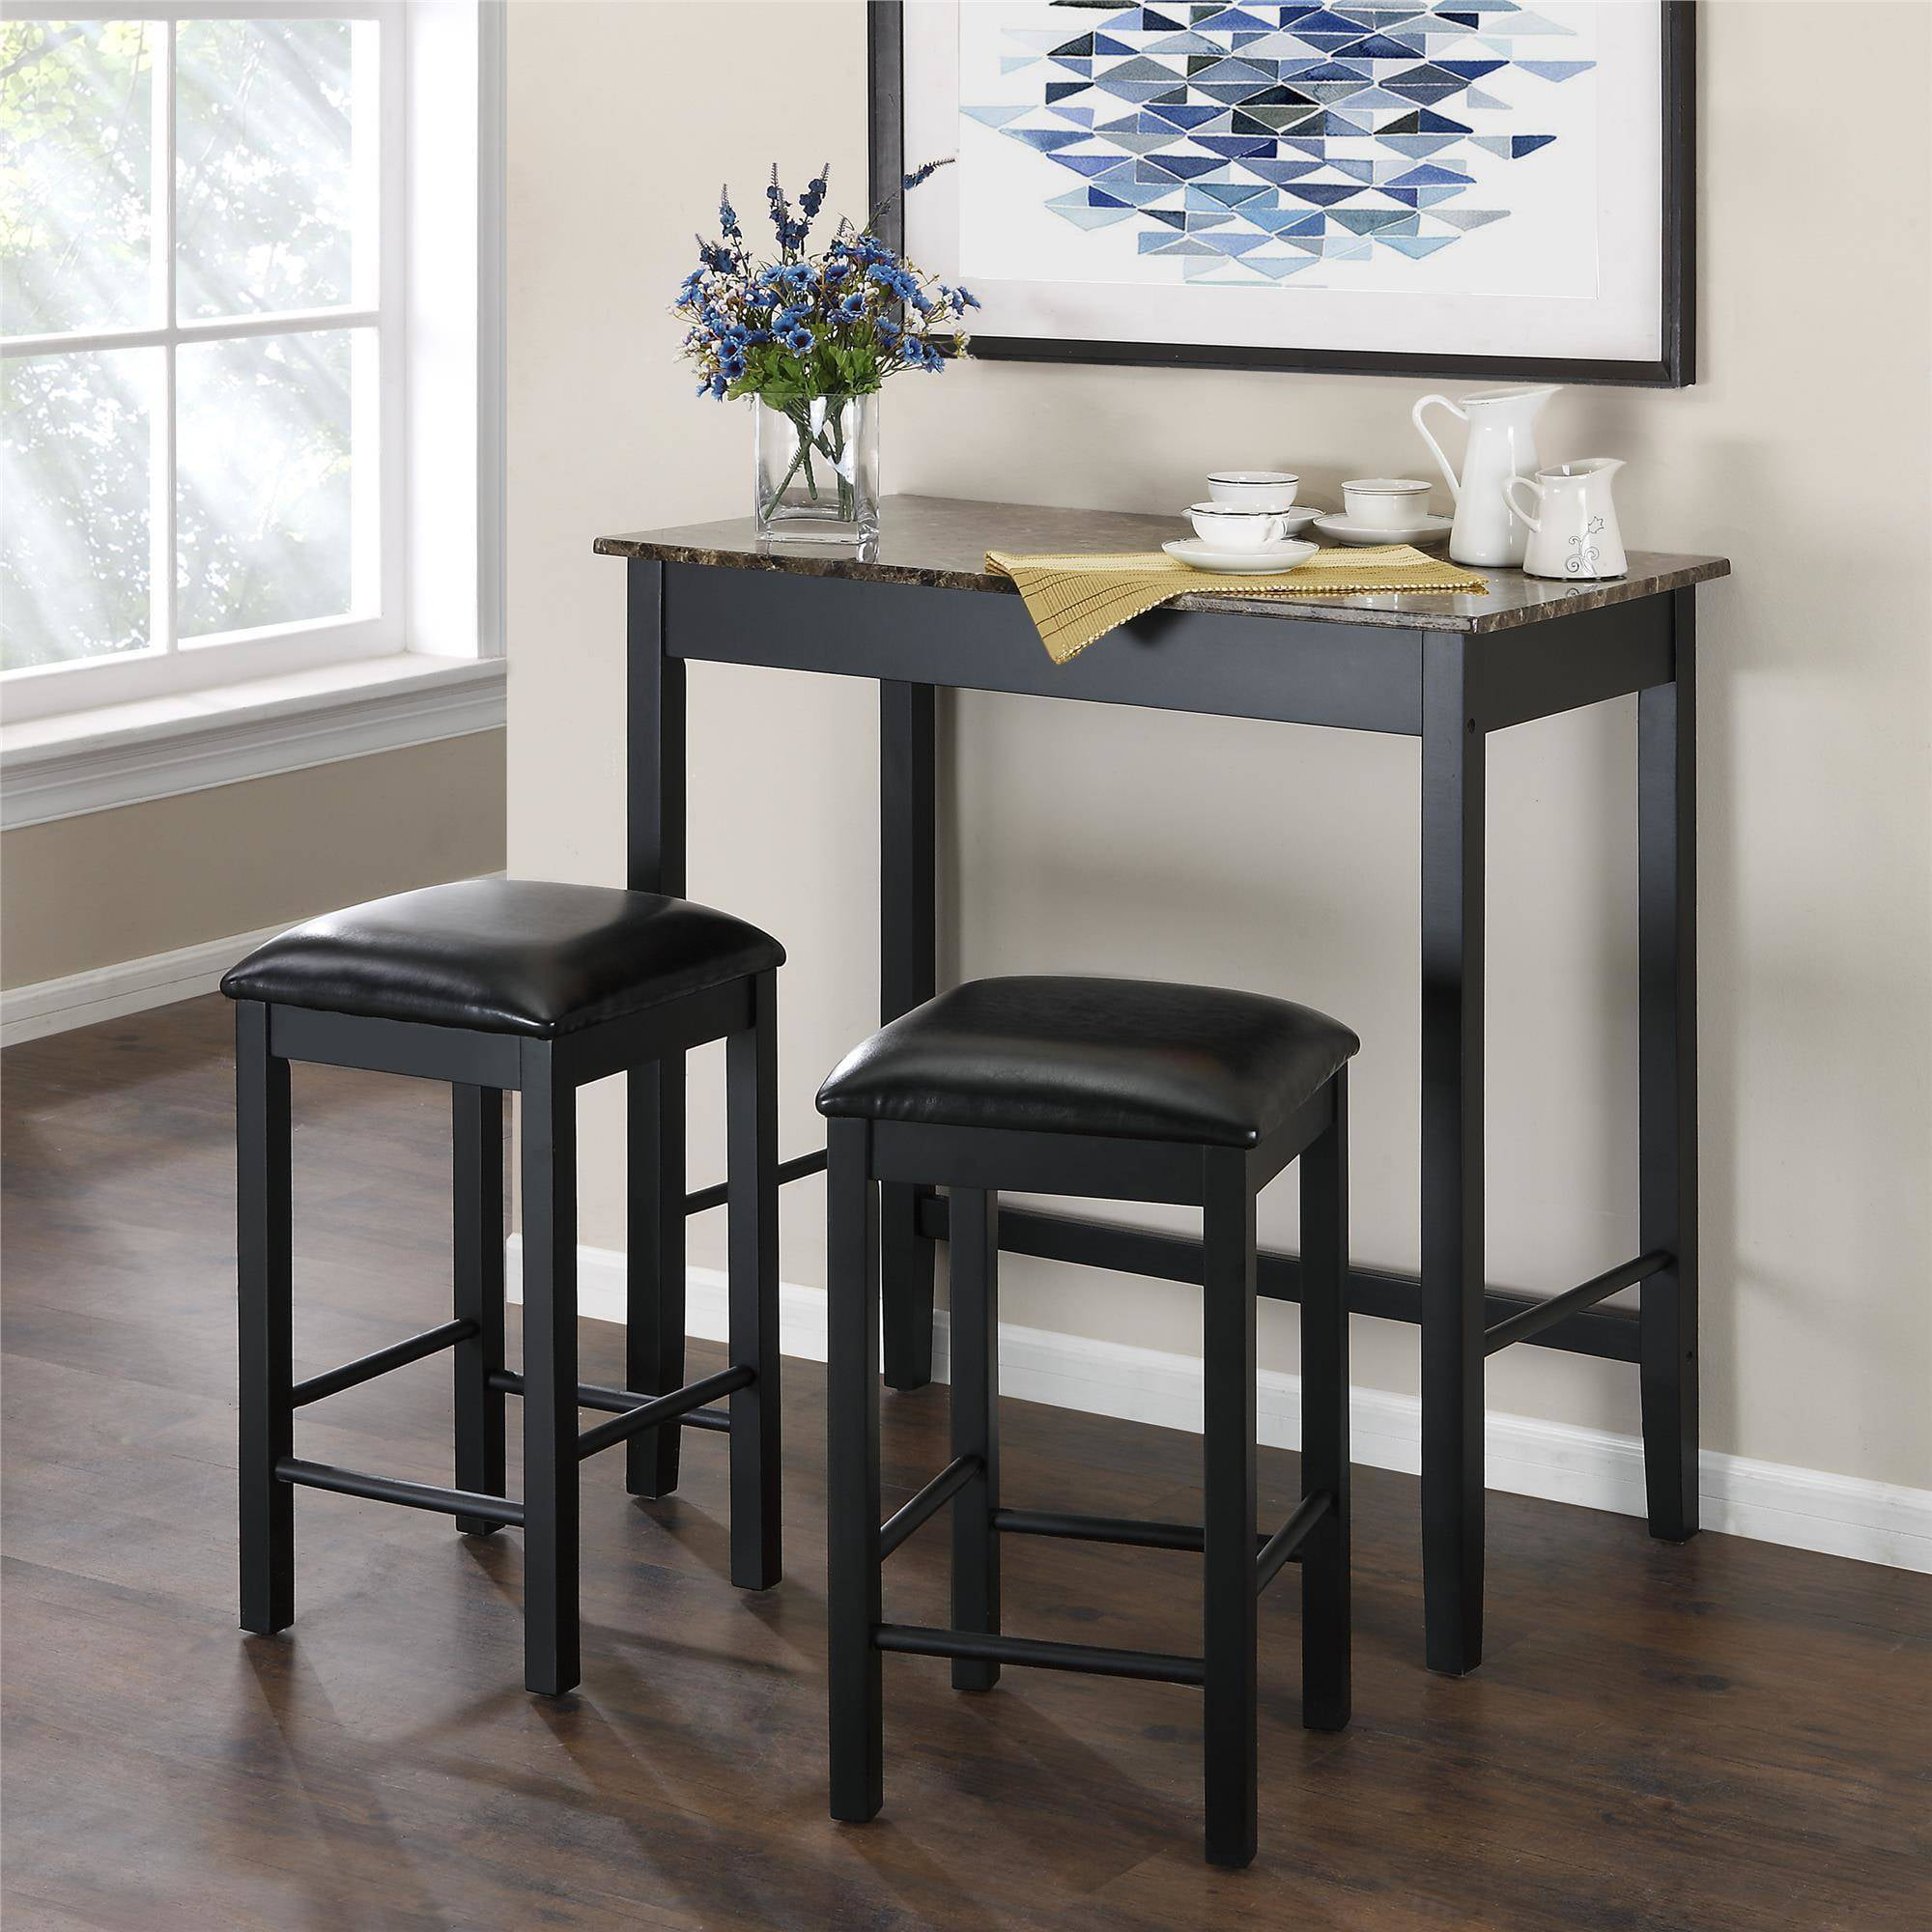 Surprising Dorel Living Devyn 3 Piece Faux Marble Pub Dining Set Black Walmart Com Onthecornerstone Fun Painted Chair Ideas Images Onthecornerstoneorg